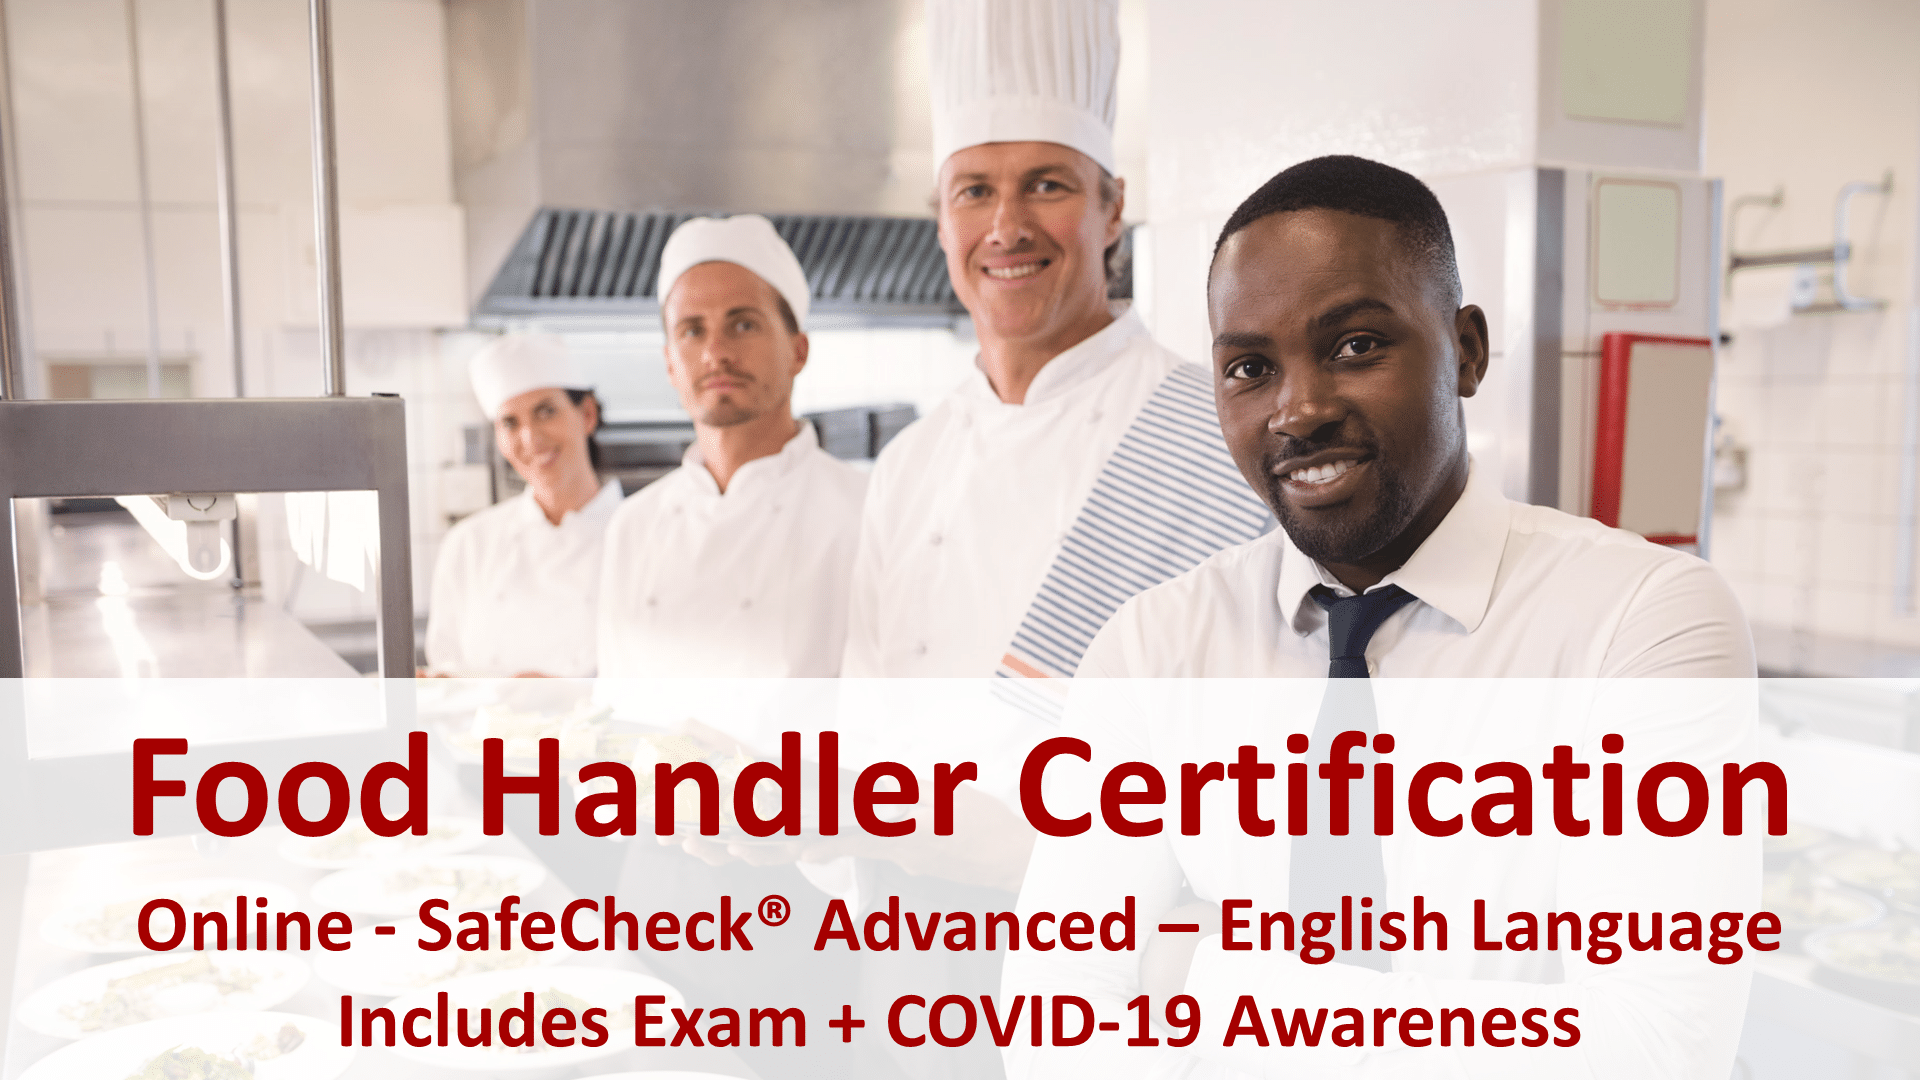 Canadian Food Handler Course - English Language